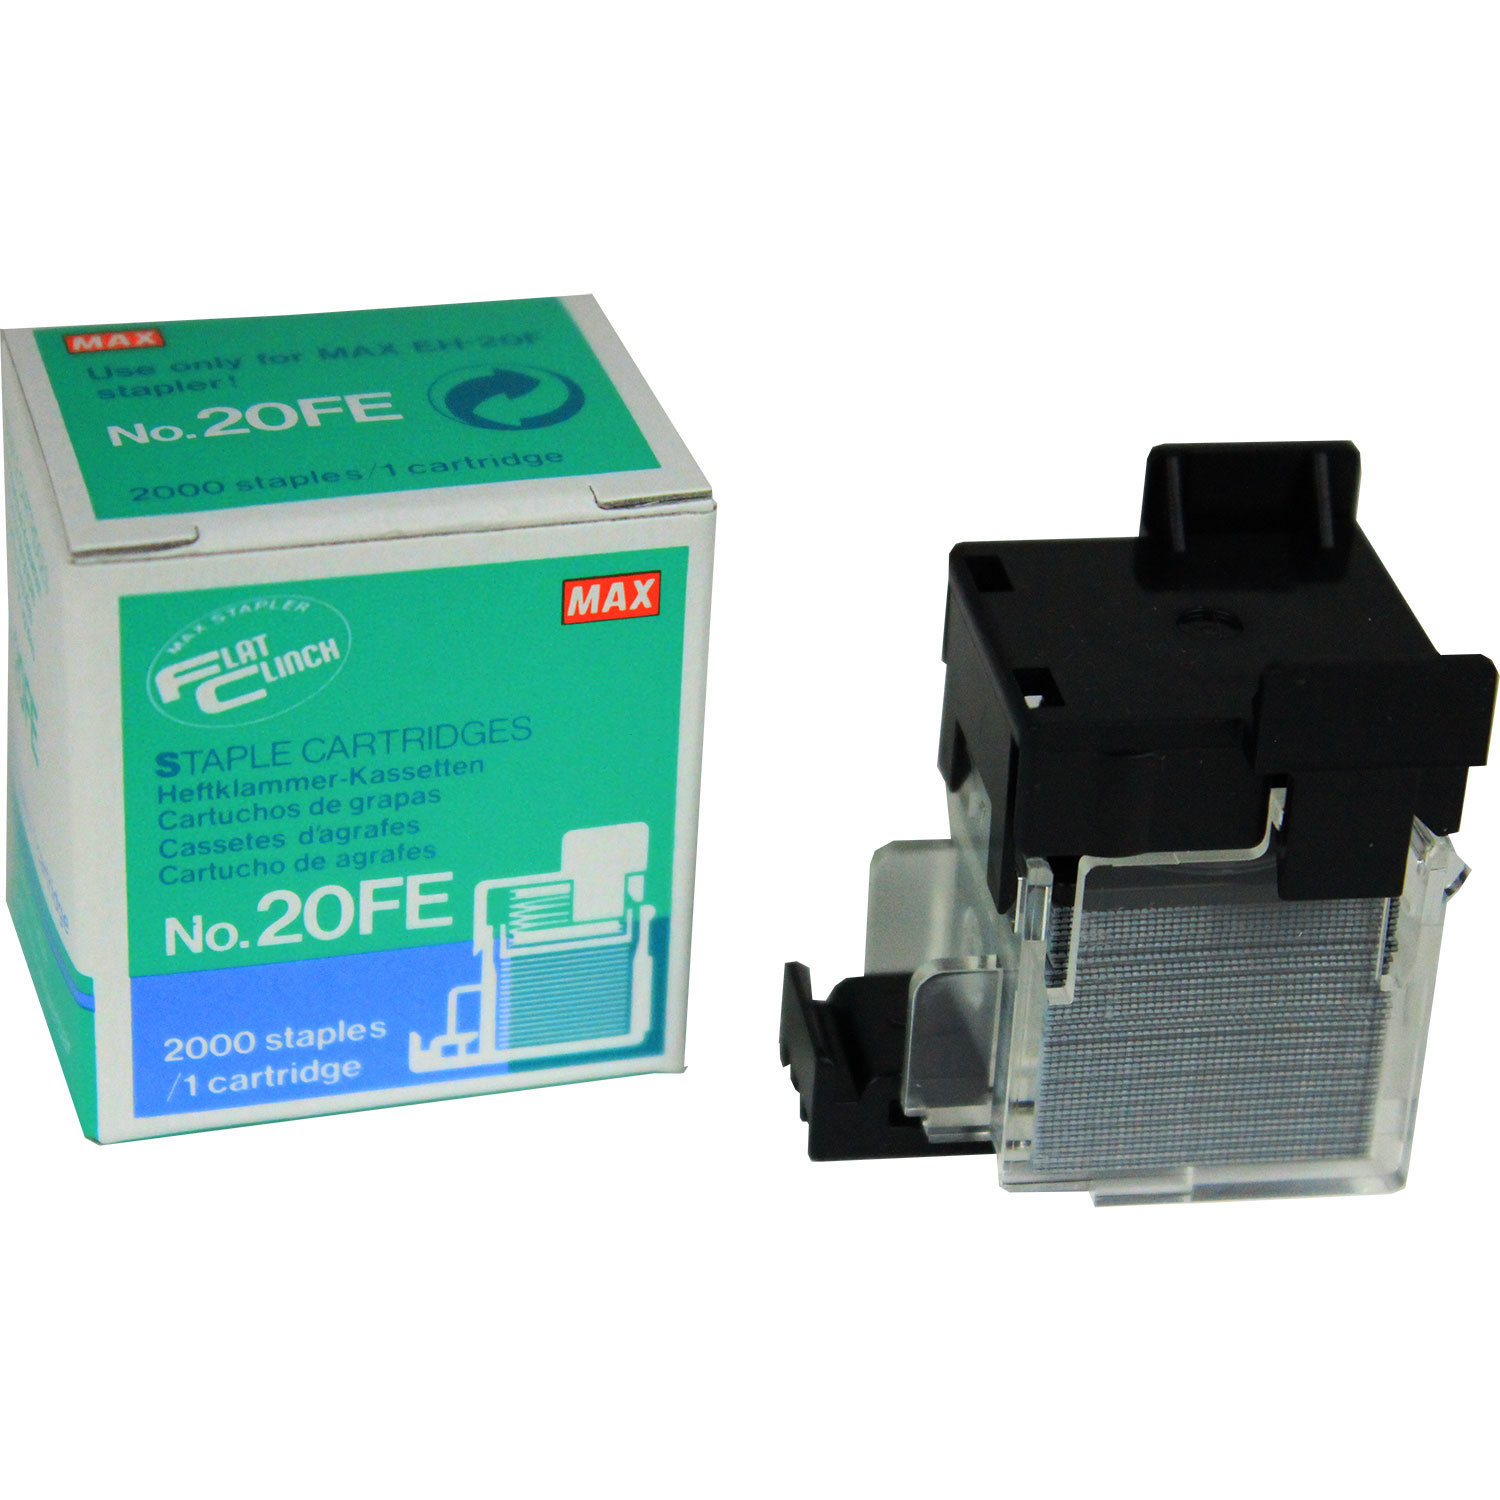 MAX 20FE Staple Refill Cartridge (Single)